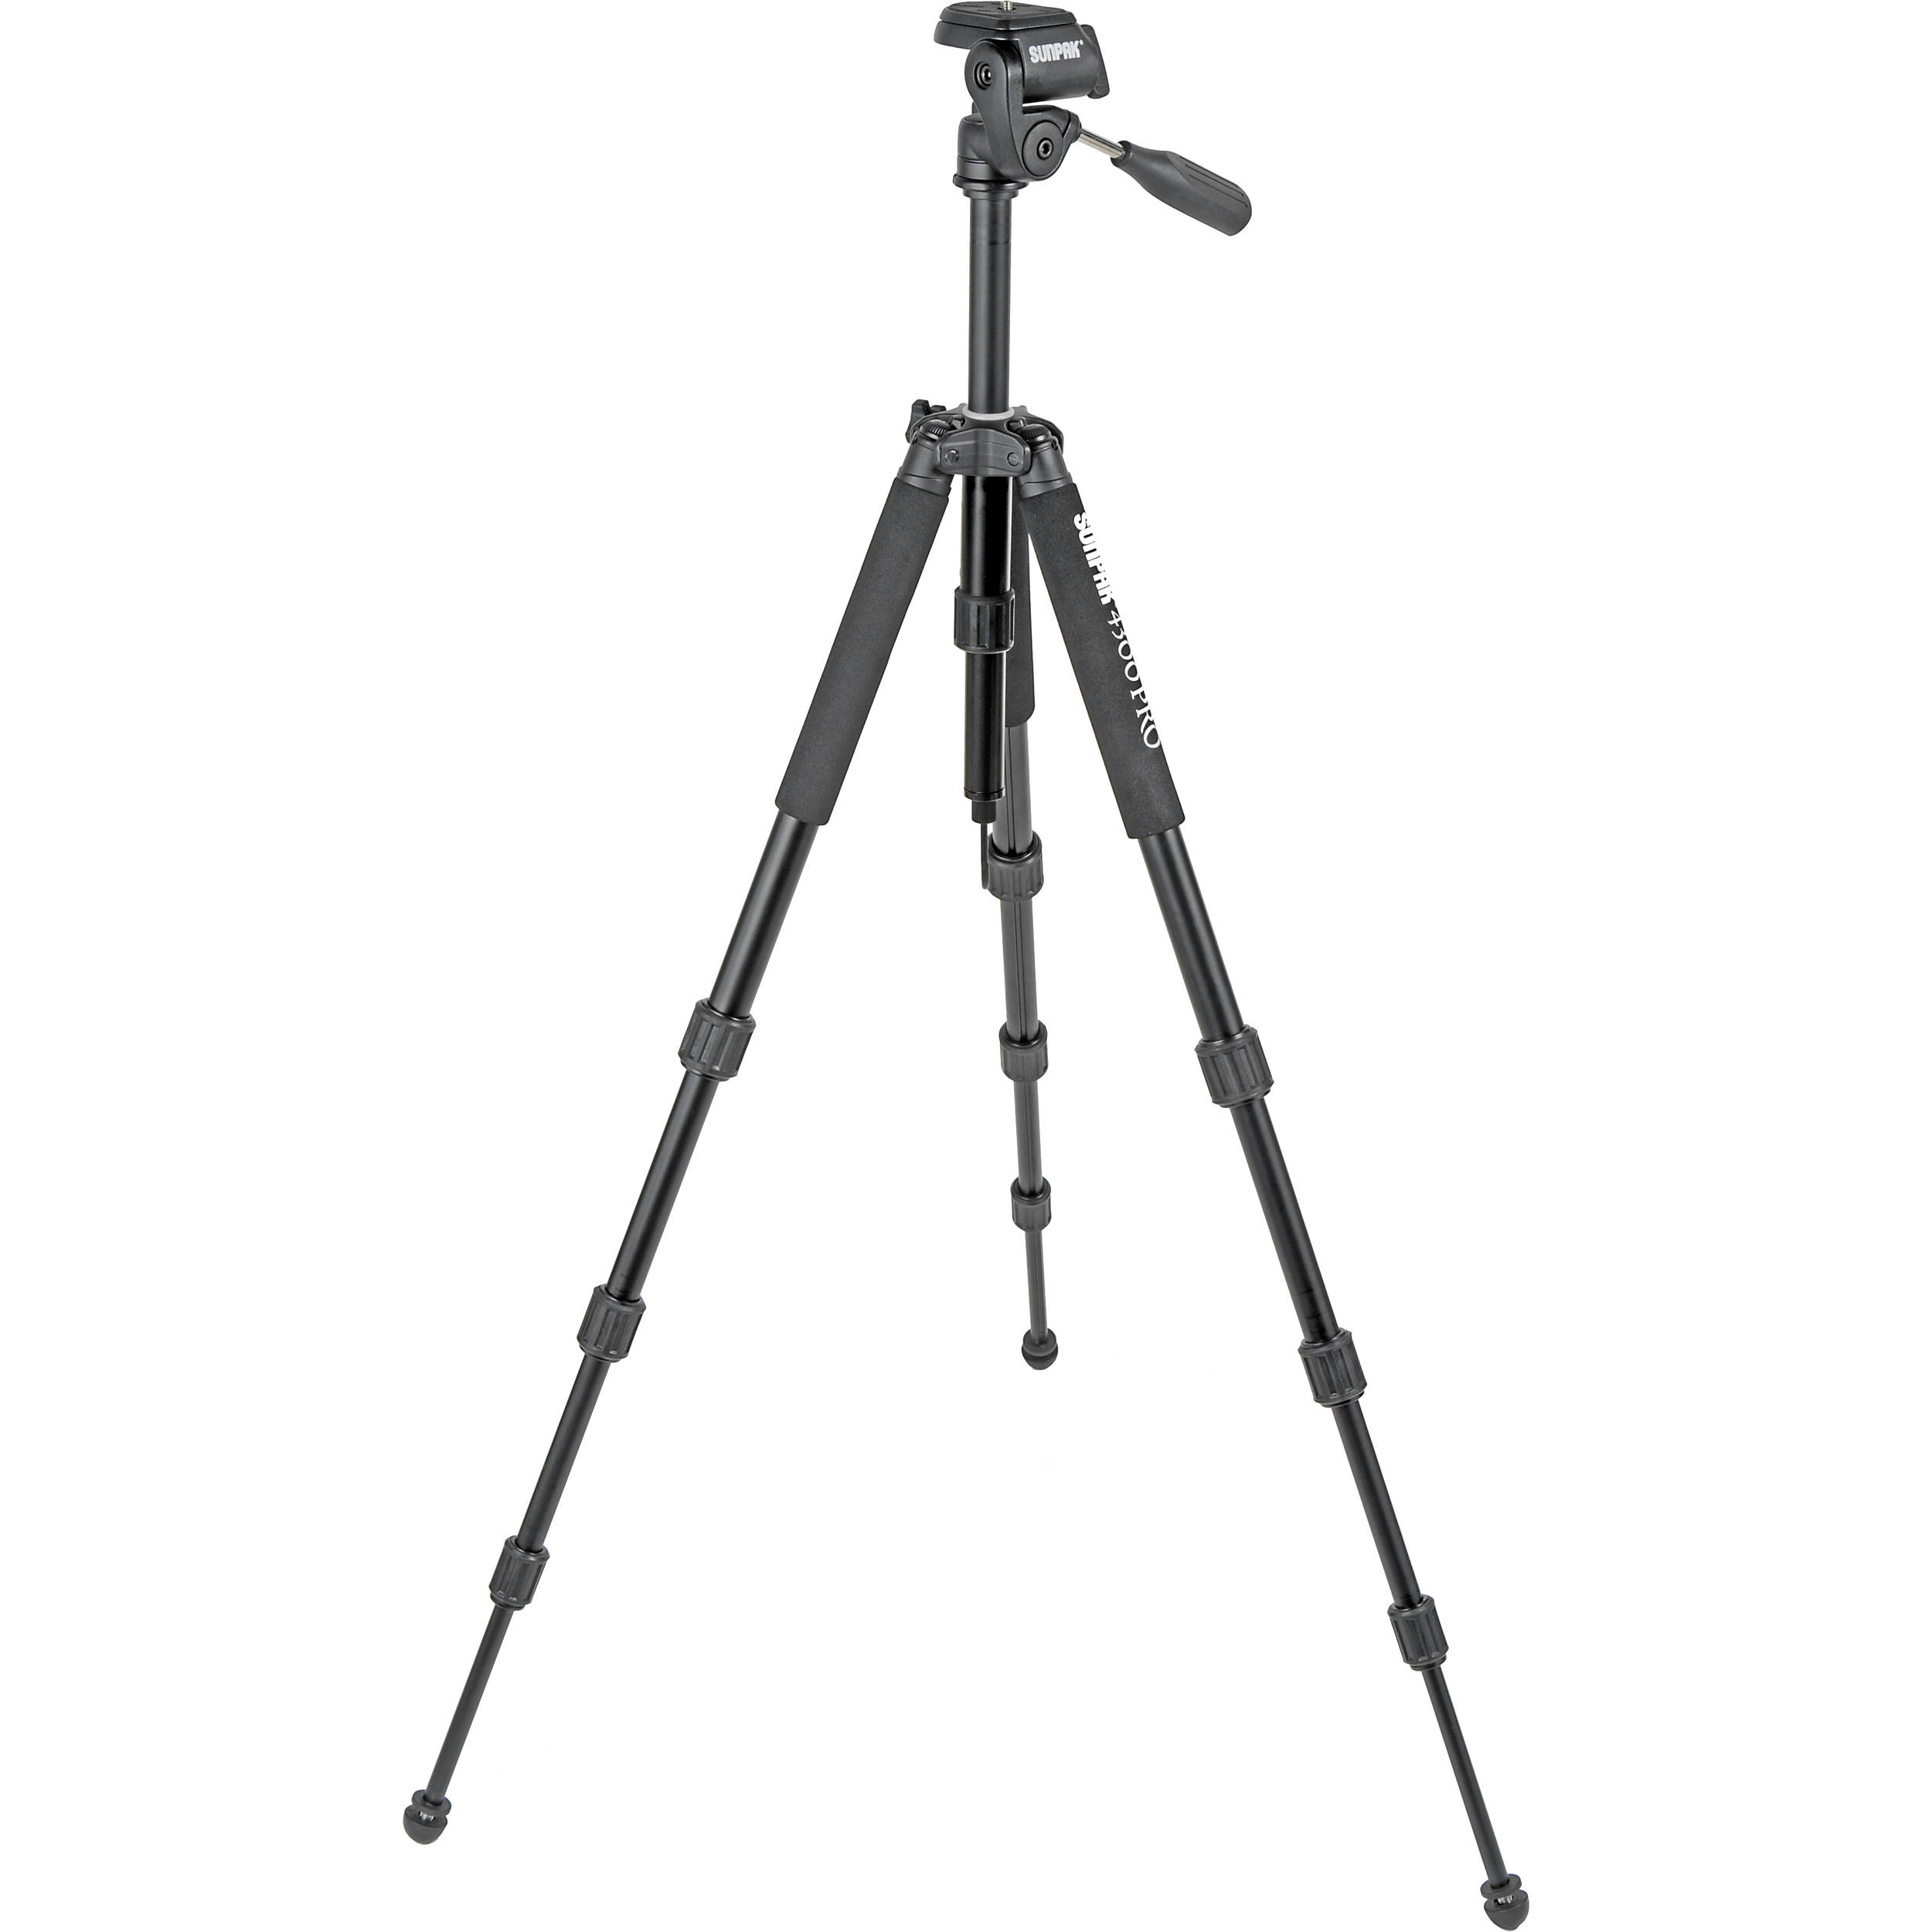 Sunpak 4300 Pro Tripod with 3-Way Pan/Tilt Head 620-430 B&H